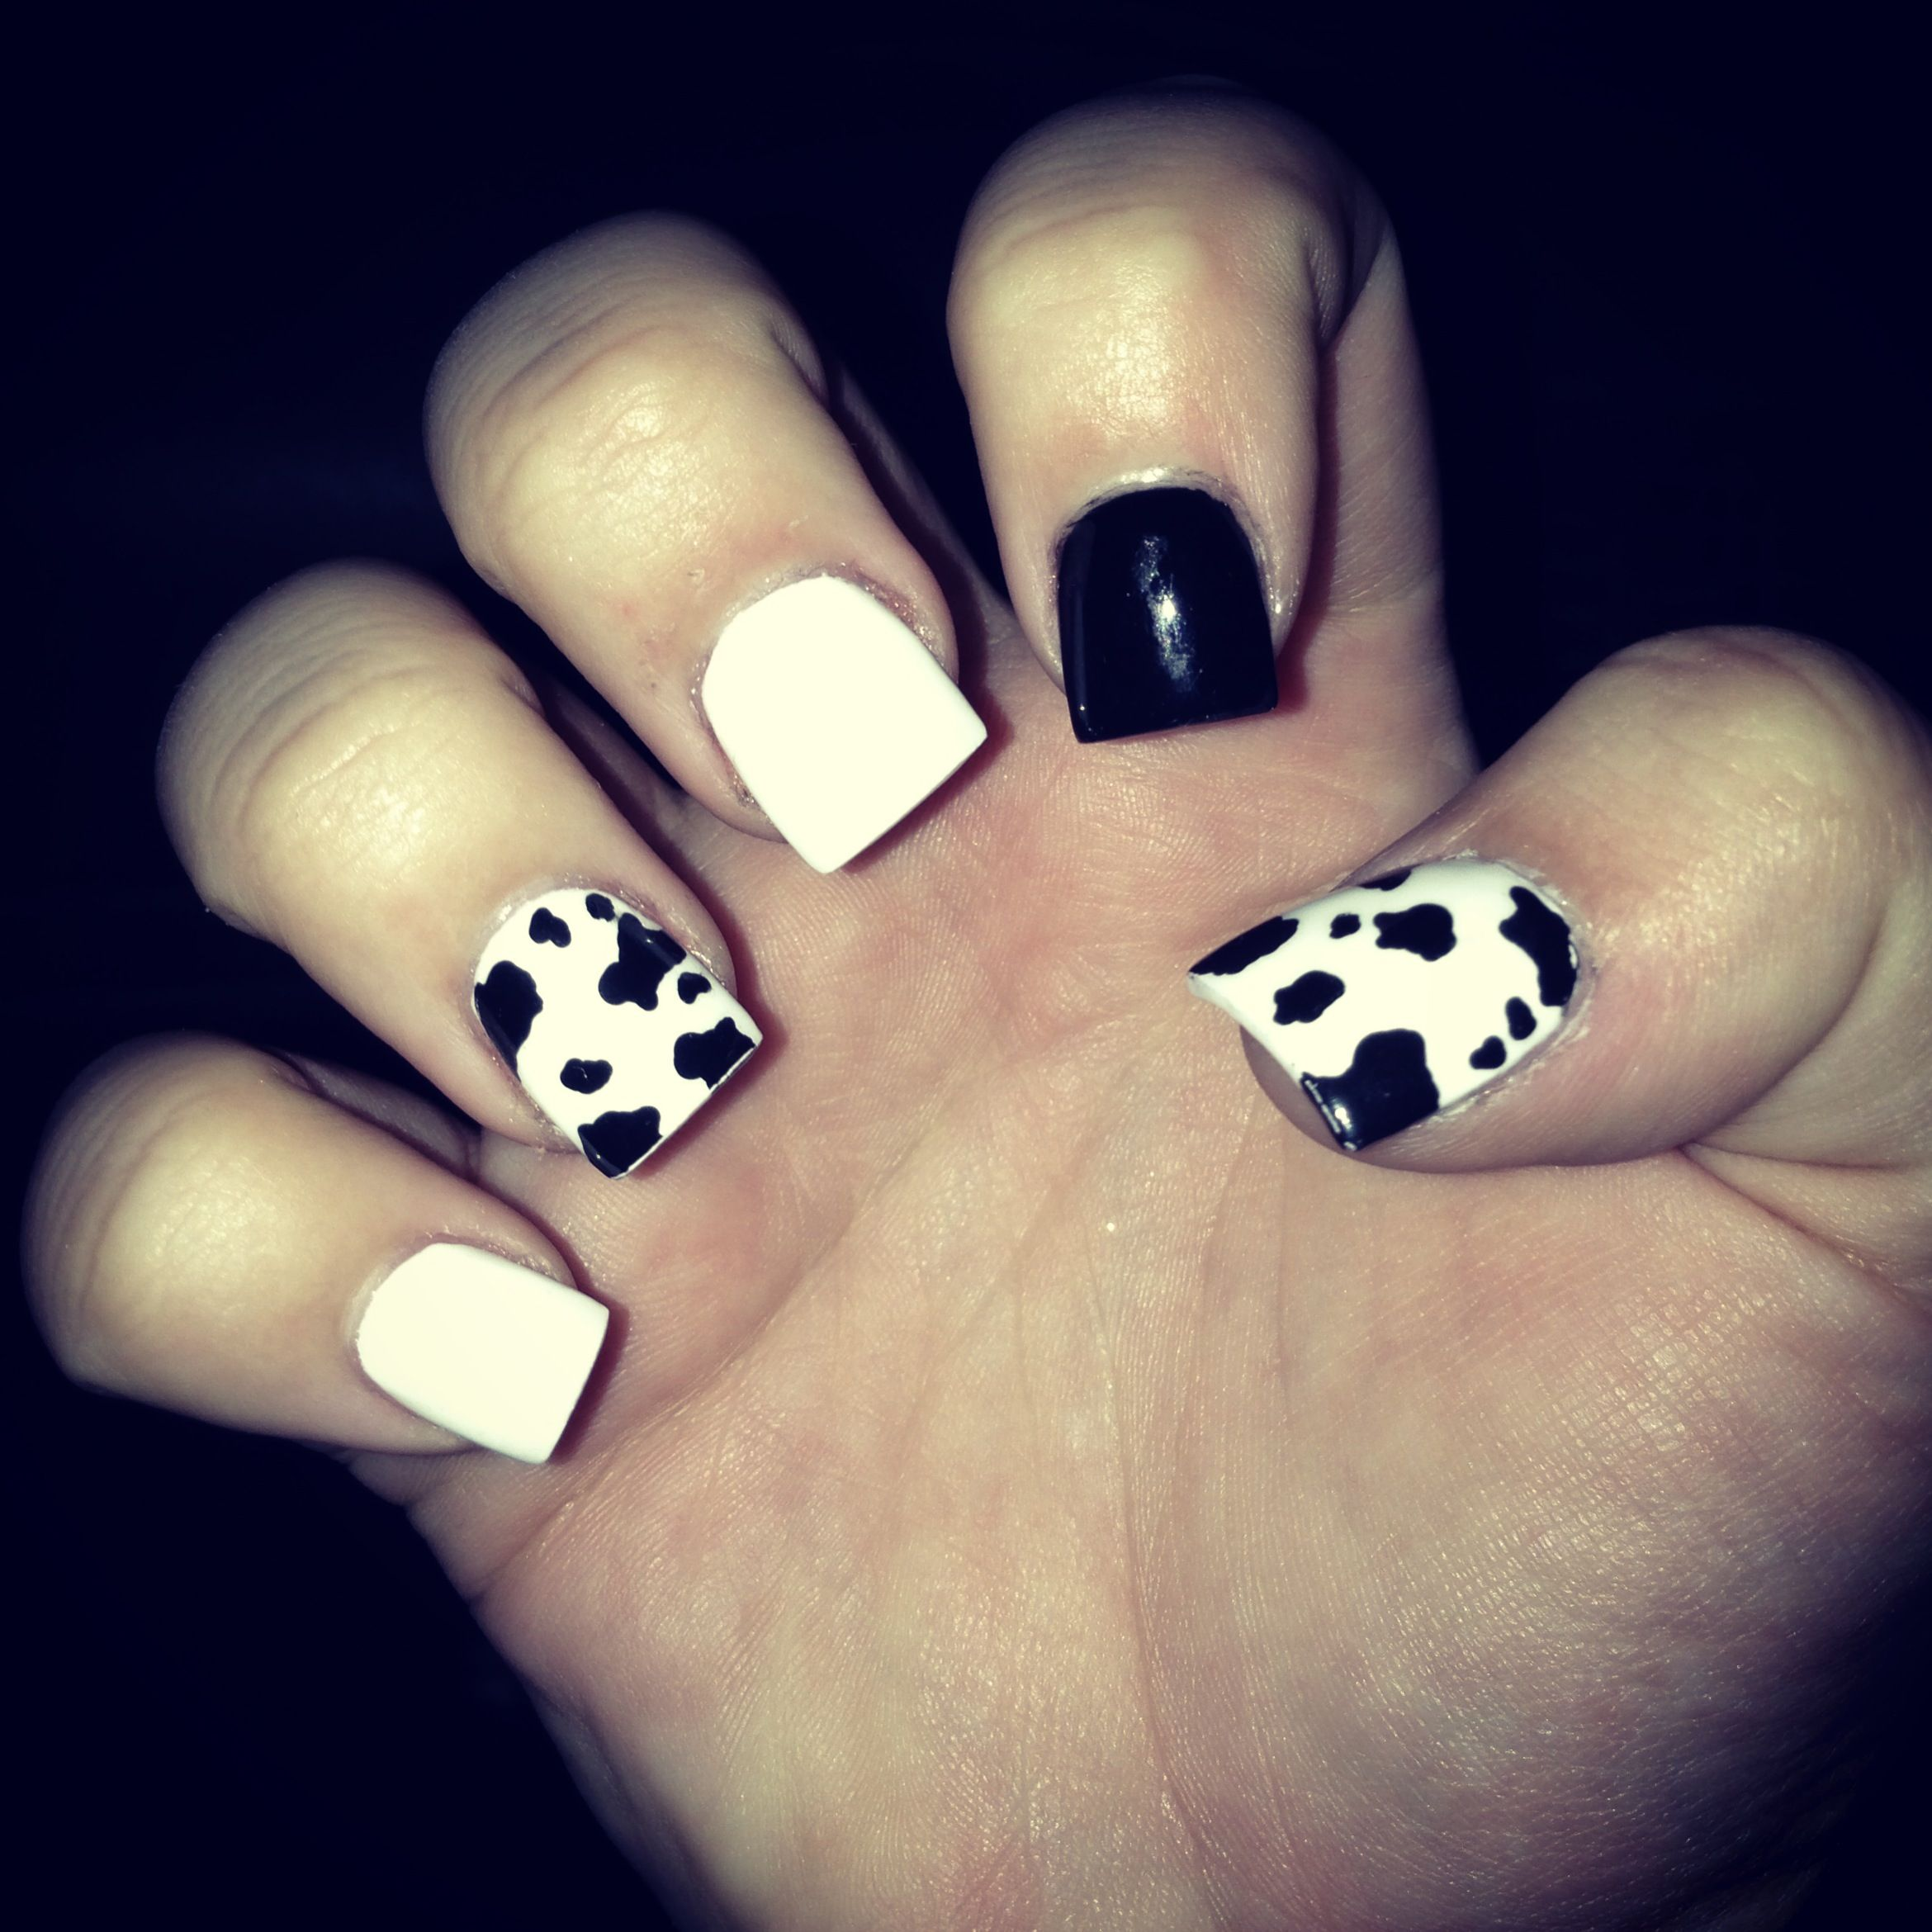 Nail Cake Blue Black Splodges Cow Print: Country Nails..